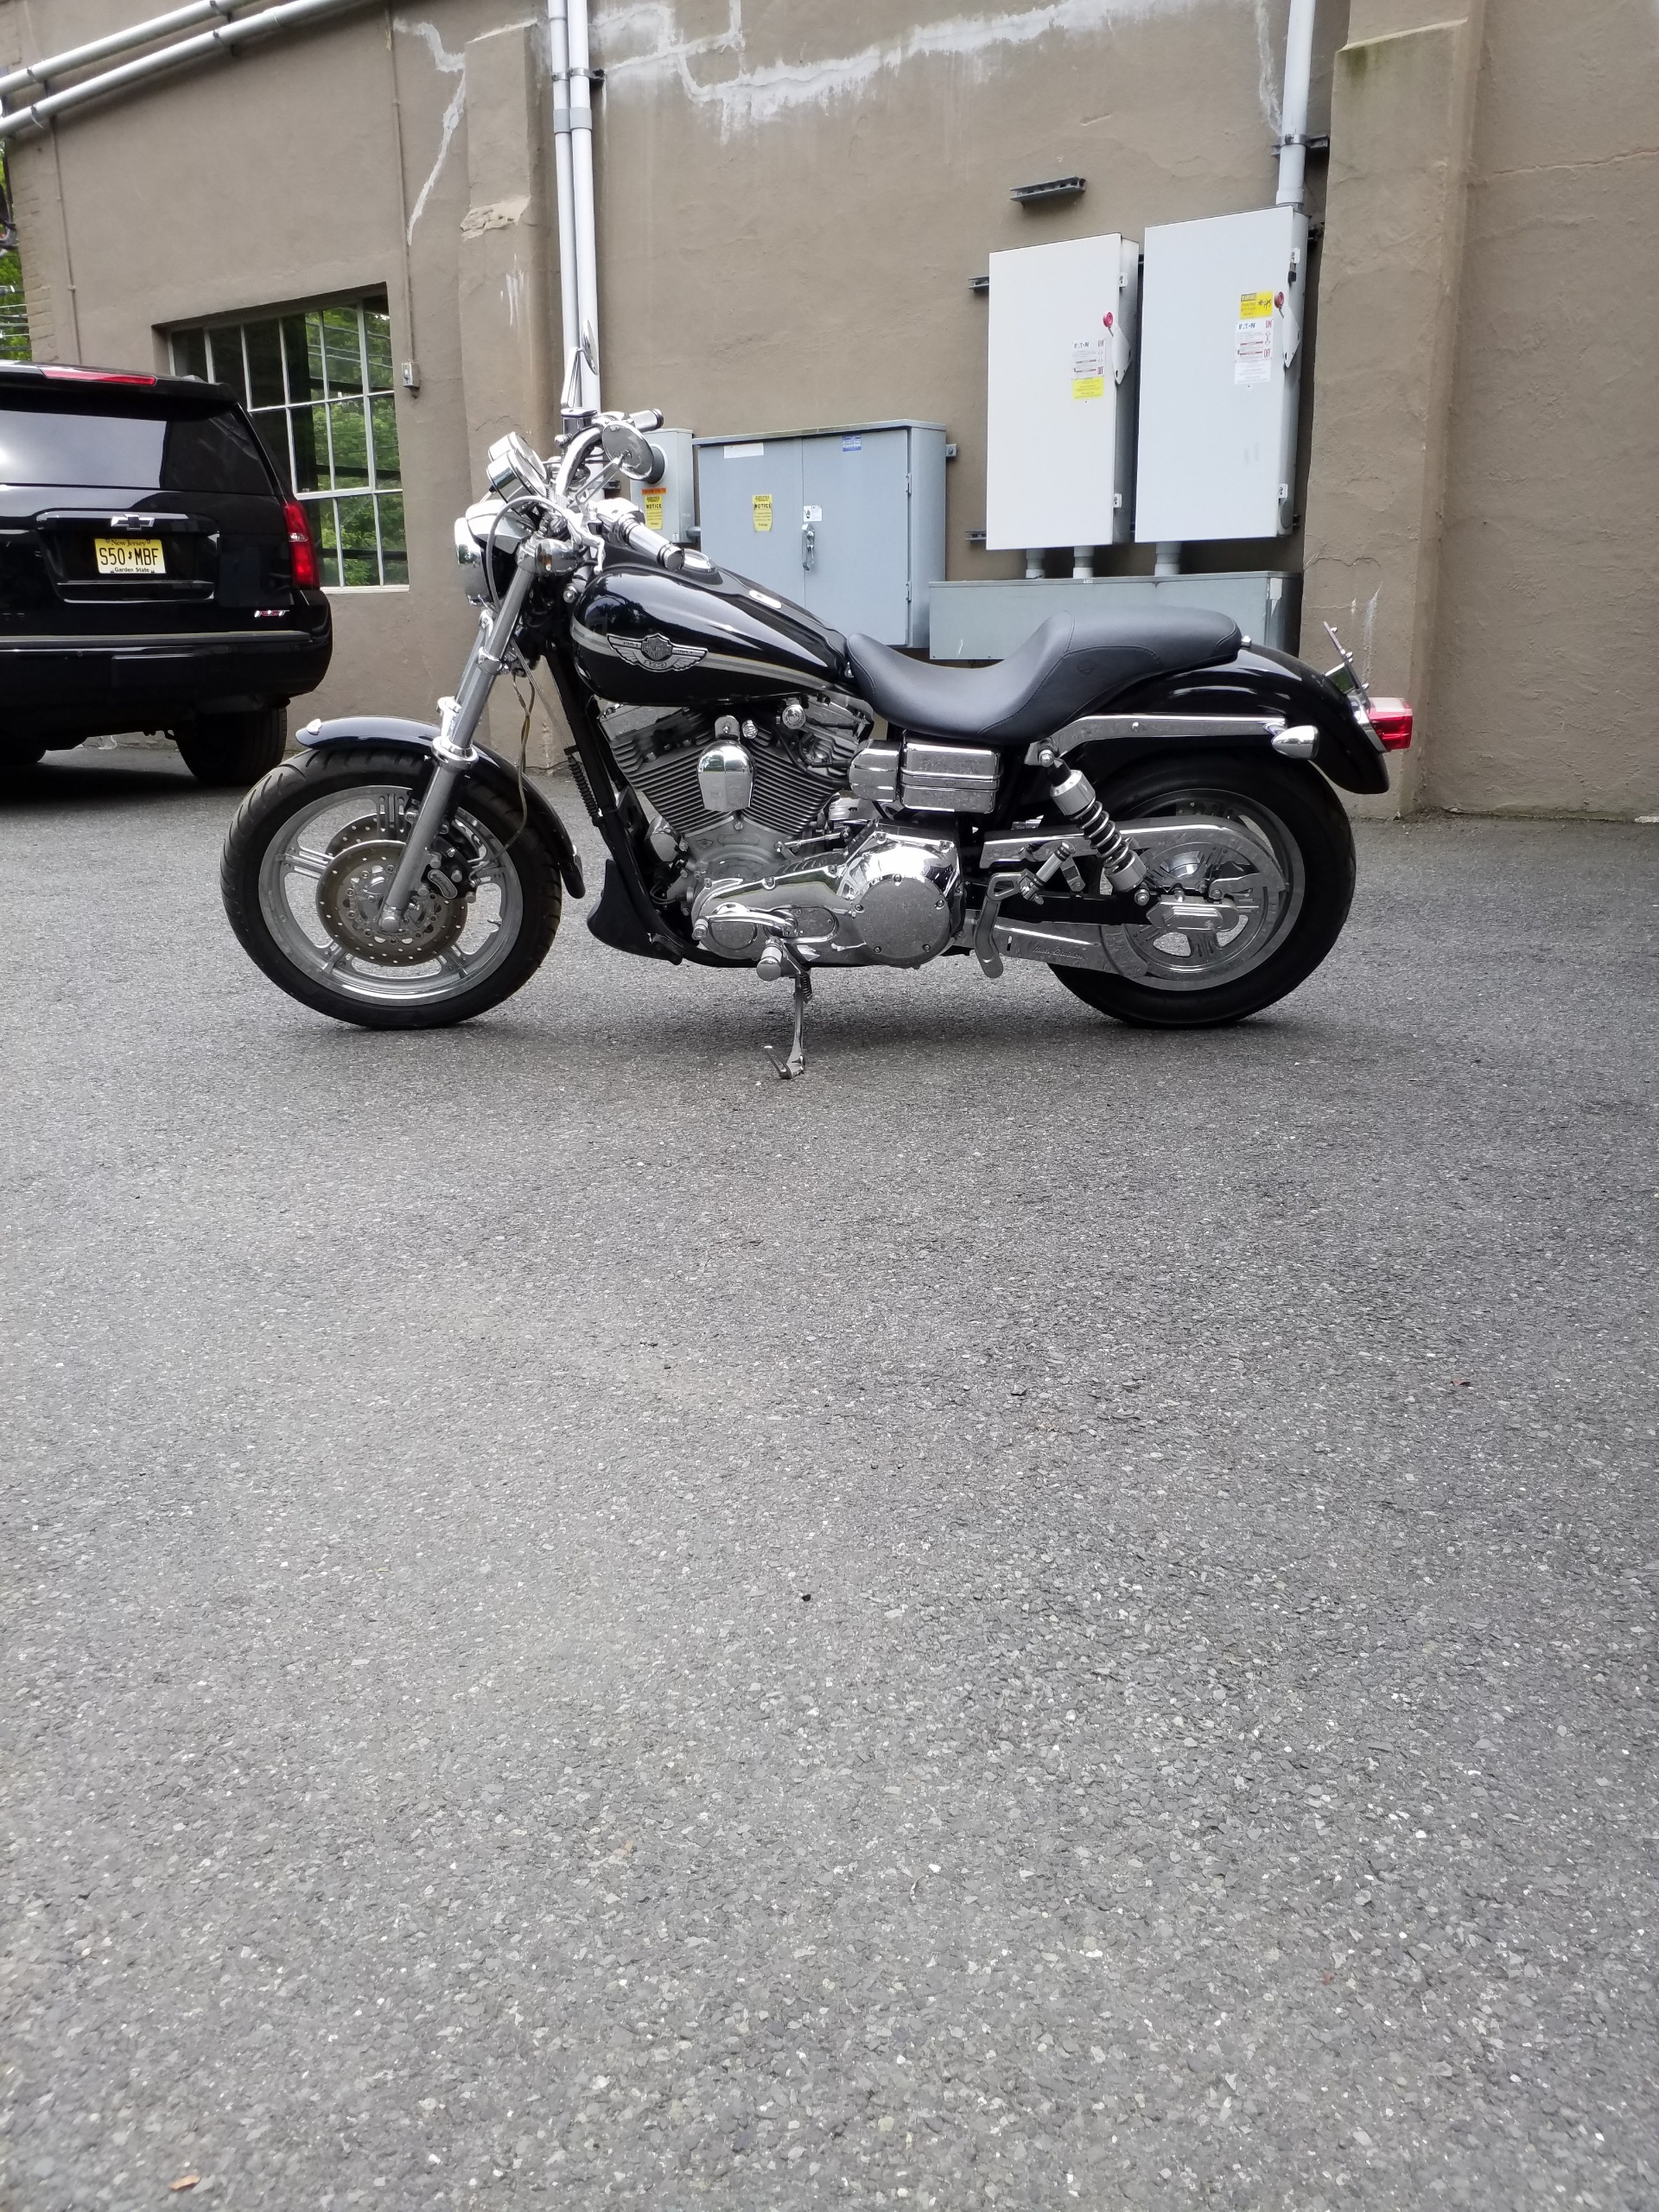 Used 2003 Harley - Davidson Super Glide 100th Anniversary | Peapack, NJ